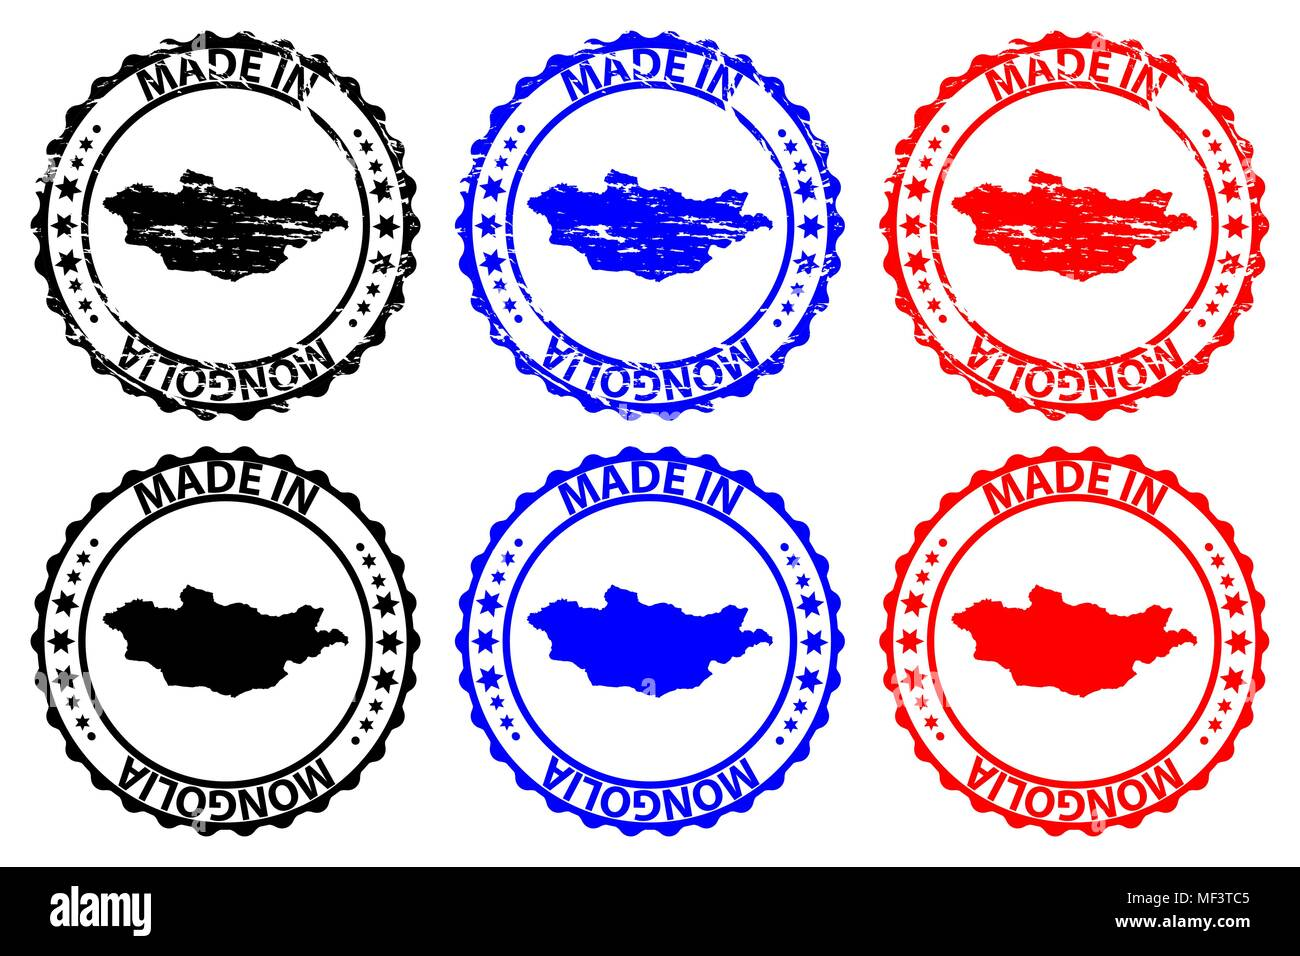 Made in Mongolia - rubber stamp - vector, Mongolia map pattern - black, blue and red - Stock Vector